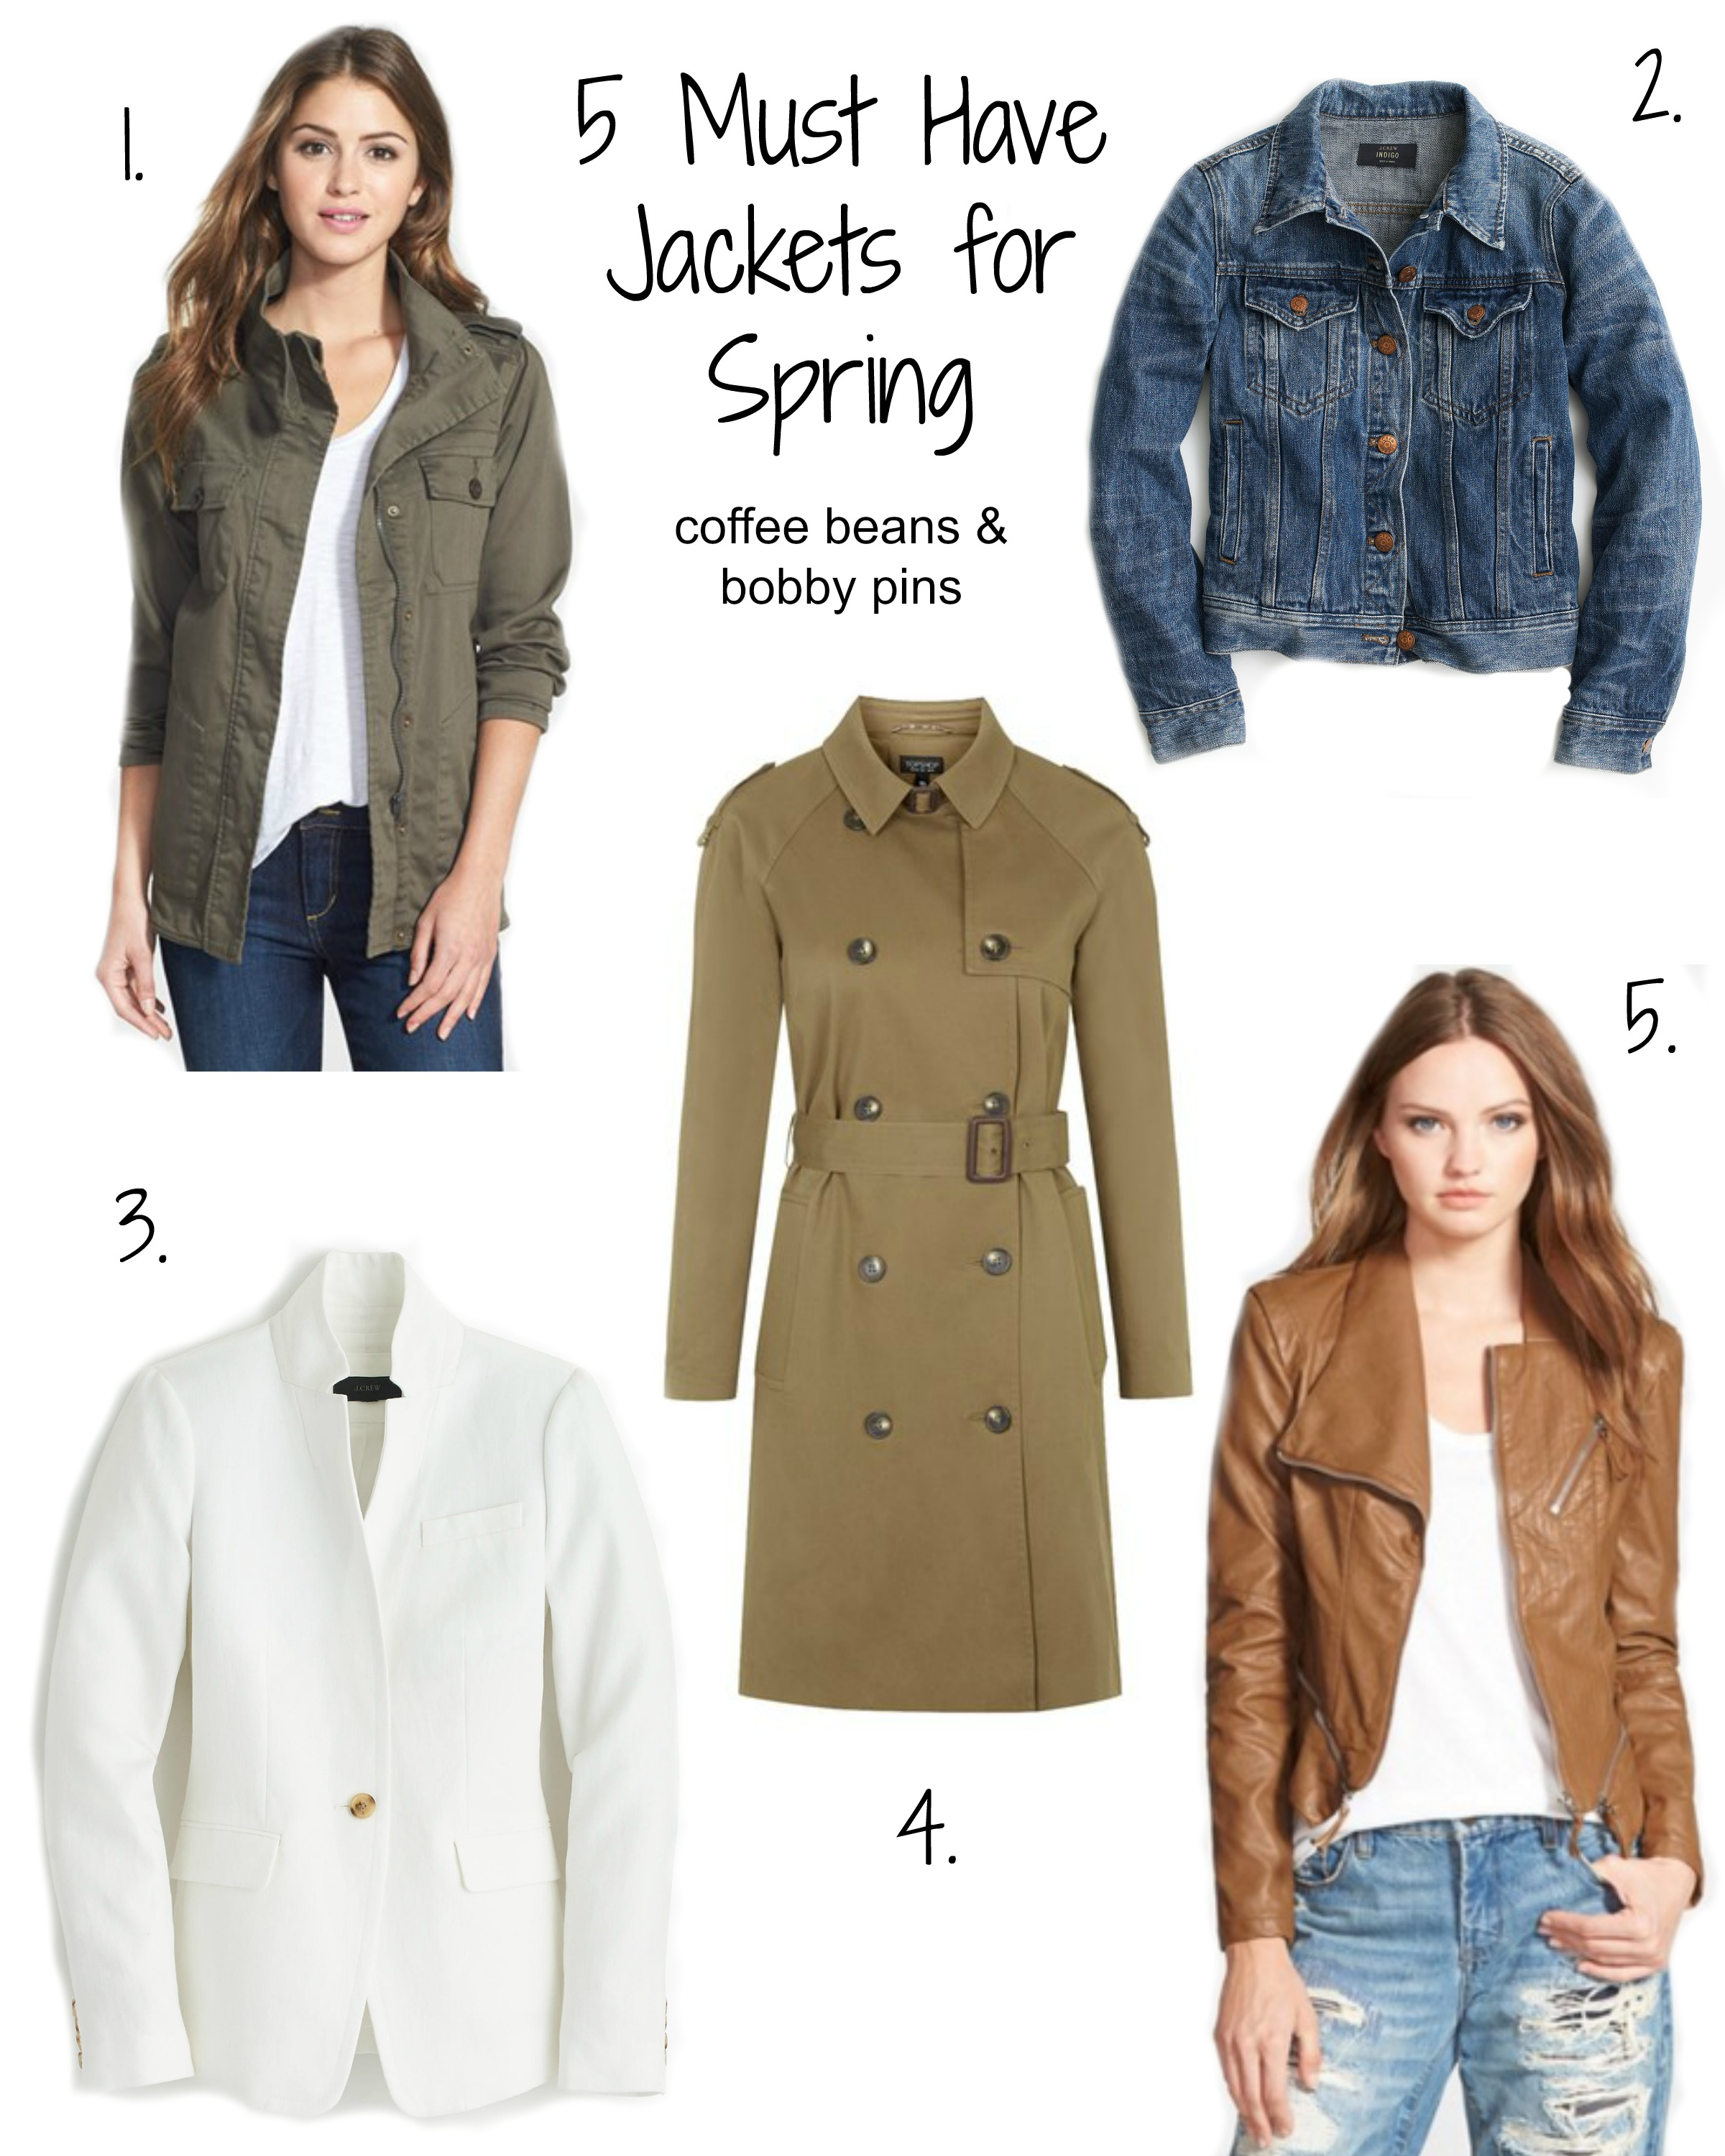 5 Must Have Jackets for Spring